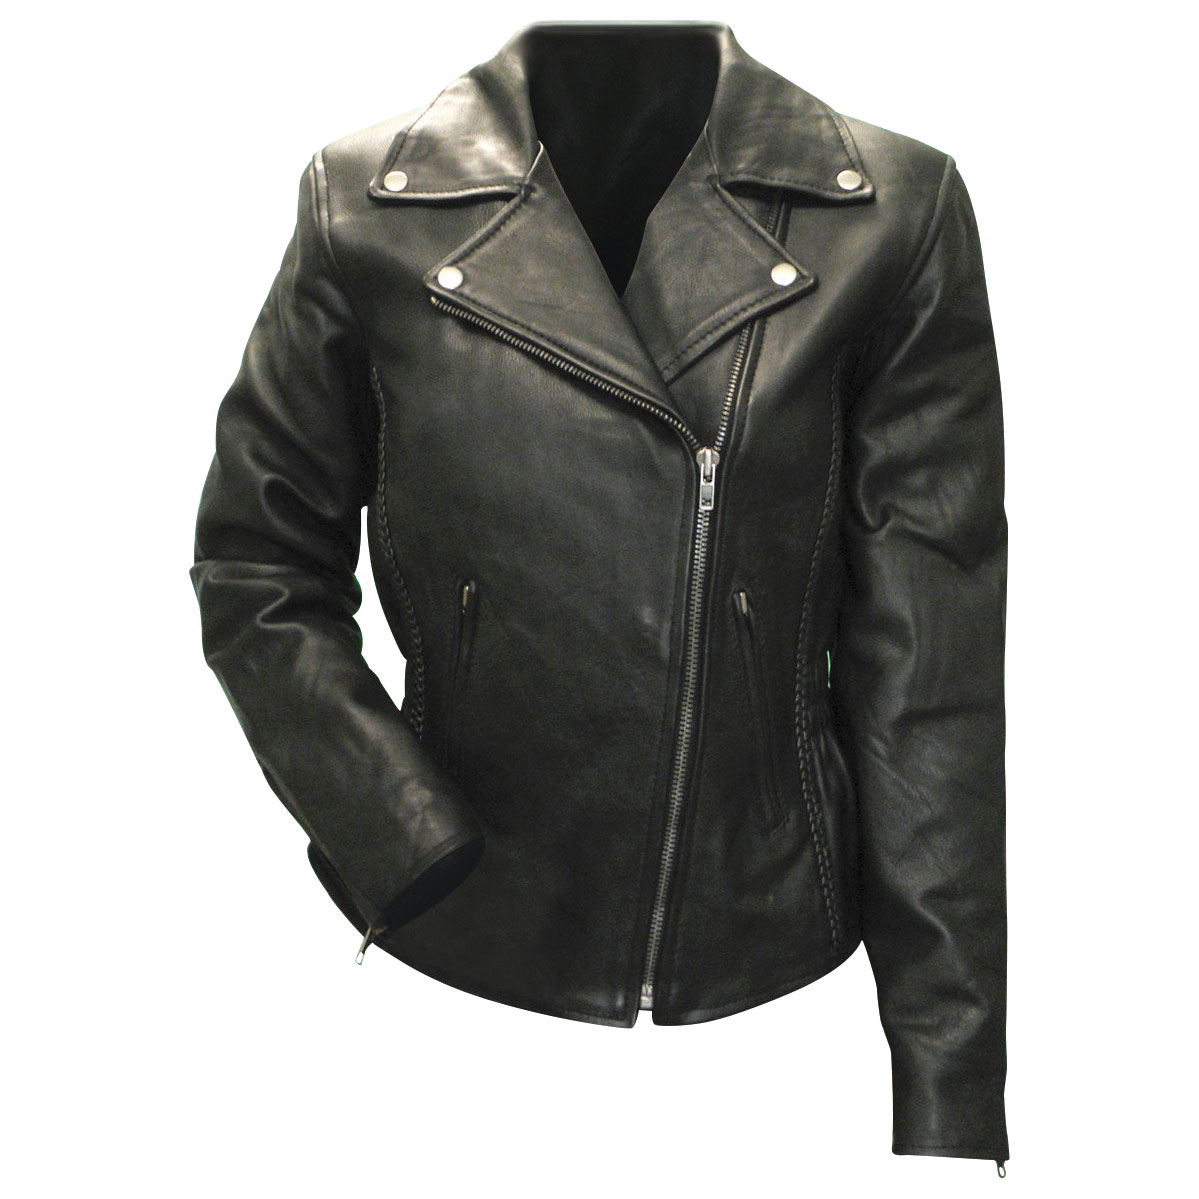 Vance Leathers Women's Braid and Stud Black Leather Jacket